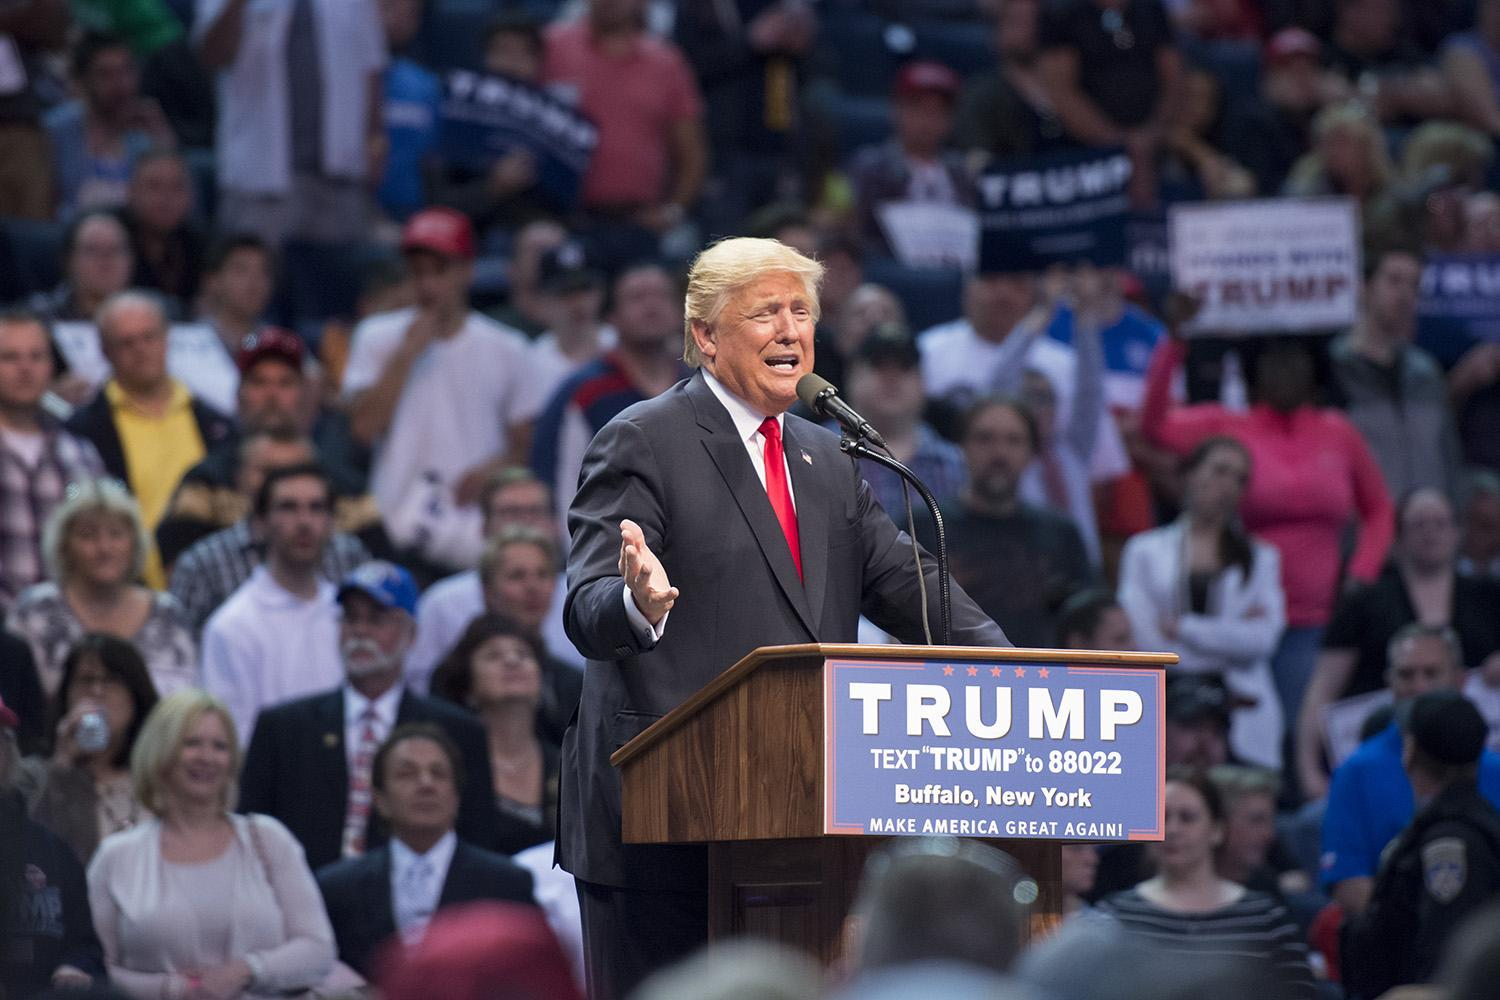 Presidential candidate Donald Trump entered First Niagara Center Monday night to a crowd that Congressman Chris Collins said was